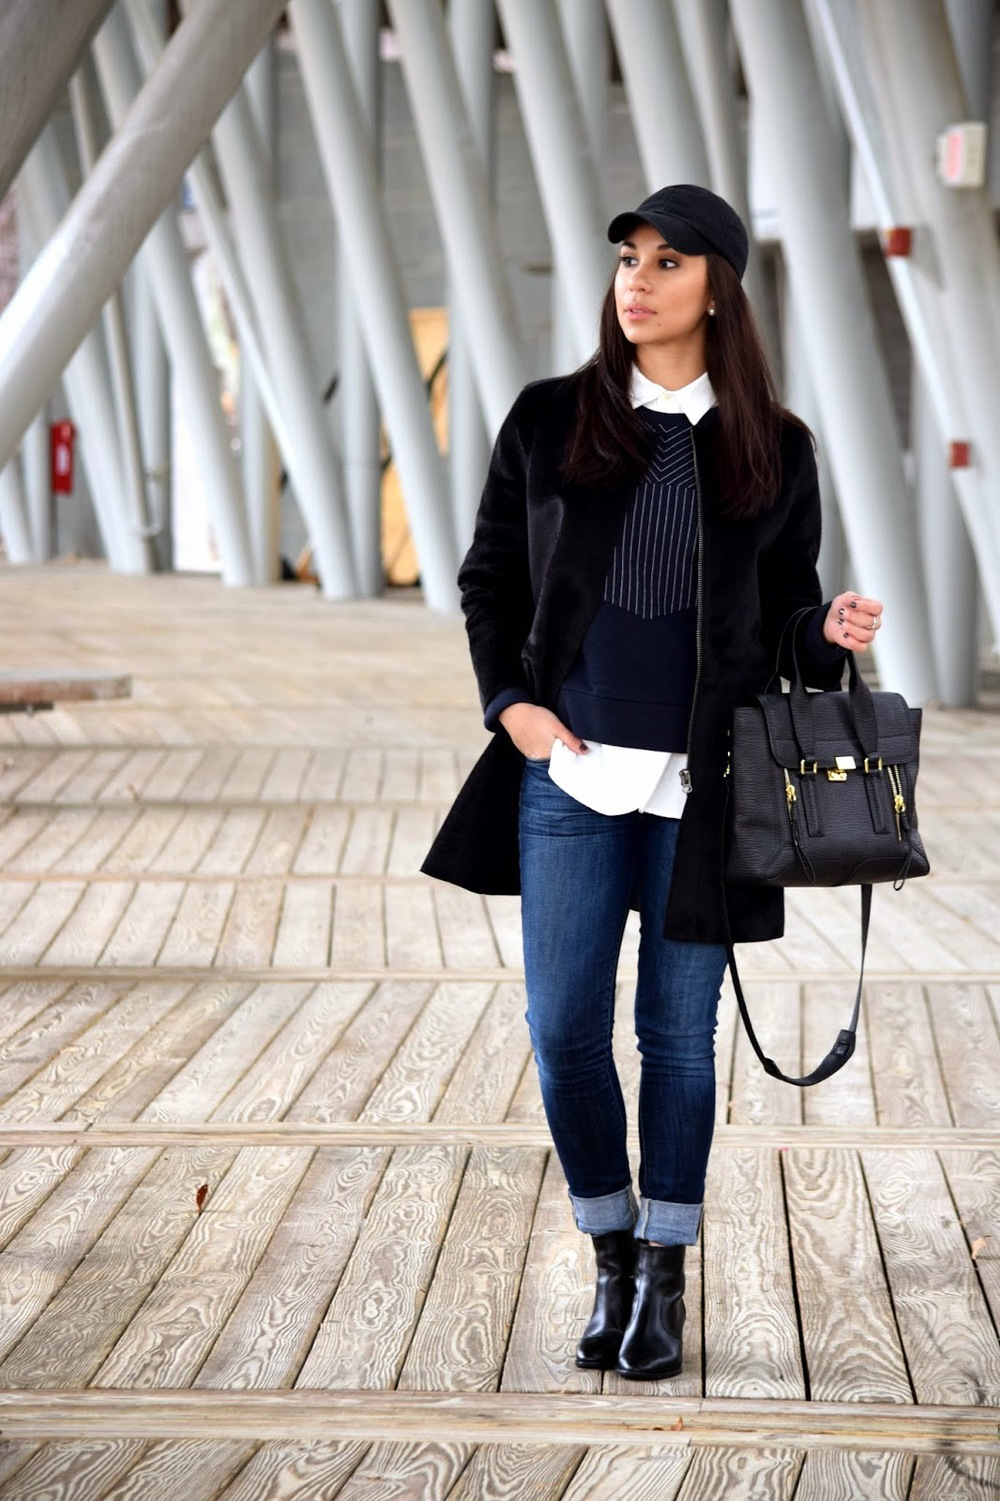 Madewell, Mel in Chanel, booties, Black 'N Blue, black and navy, baseball cap, baseball hat, black, 3.1 Phillip Lim, Pashli Tote, Ames boot, Citizens of Humanity, skinny jean, distressed, baseball game, amphitheater, sweatshirt, J. Crew, stripes, cotton top, Mel, Melissa de Leon